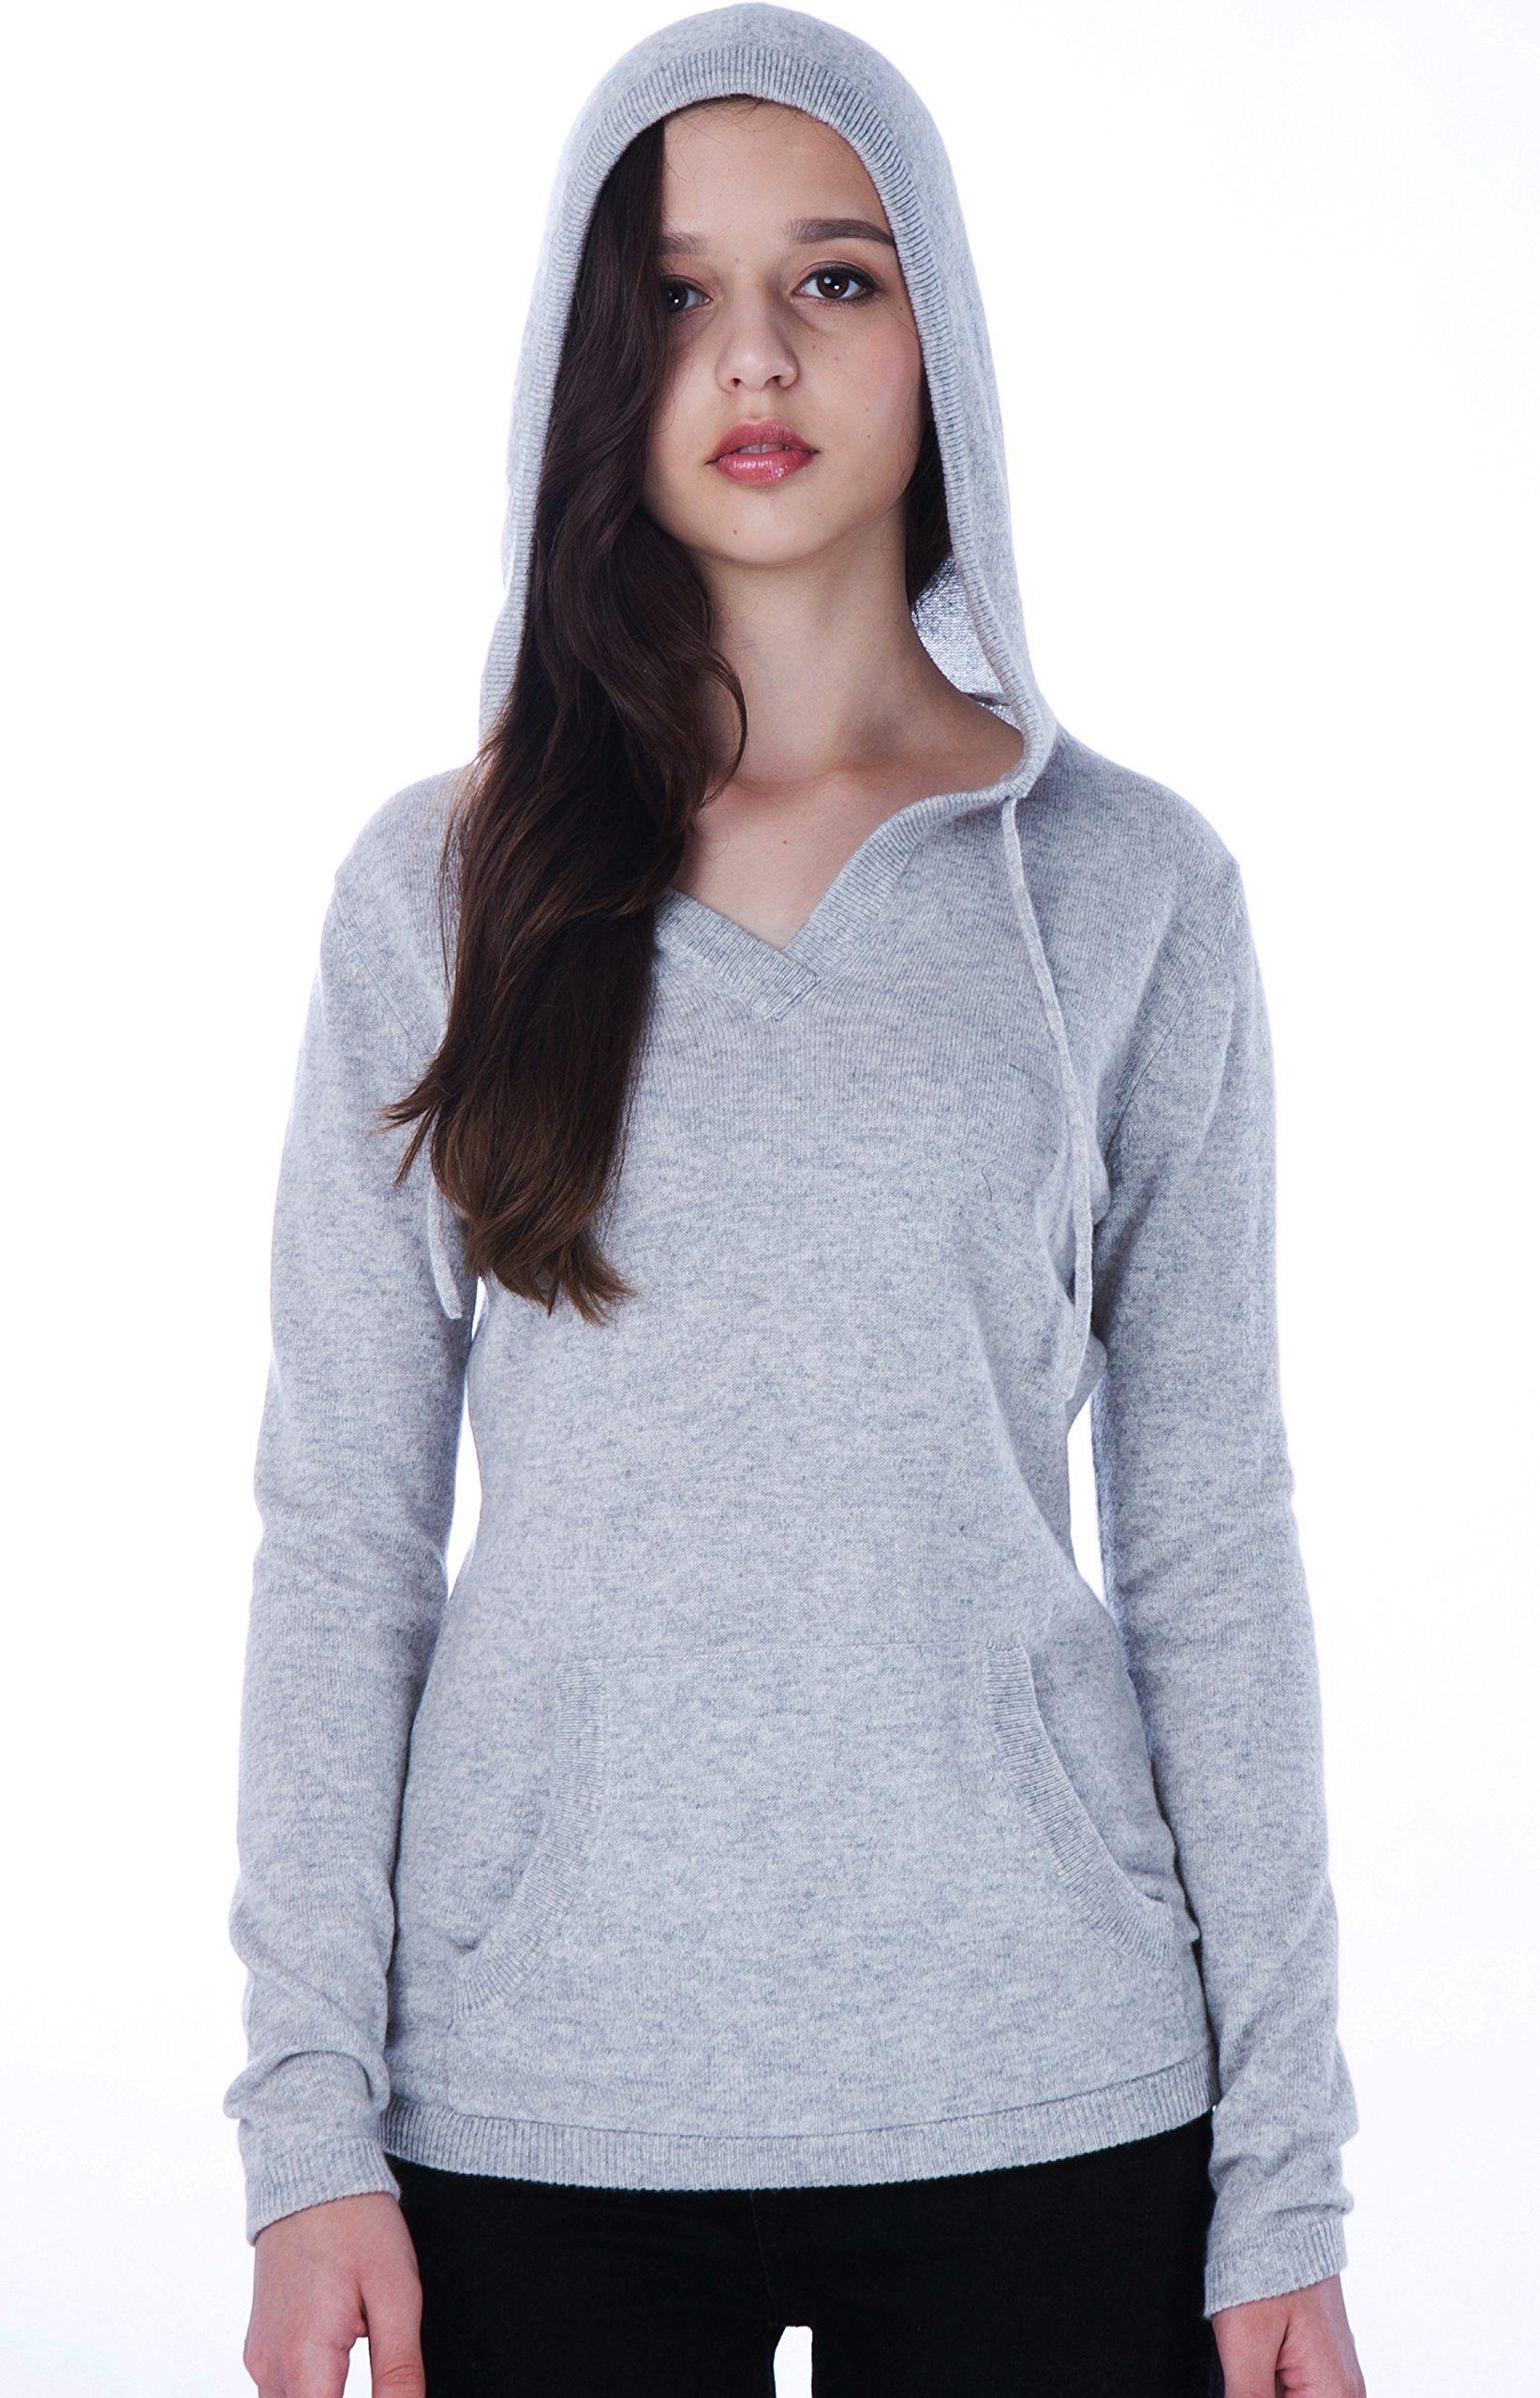 cashmere 4 U Women's 100% Cashmere V Neck Hoodie Sweater Pullover (Large, Argent)